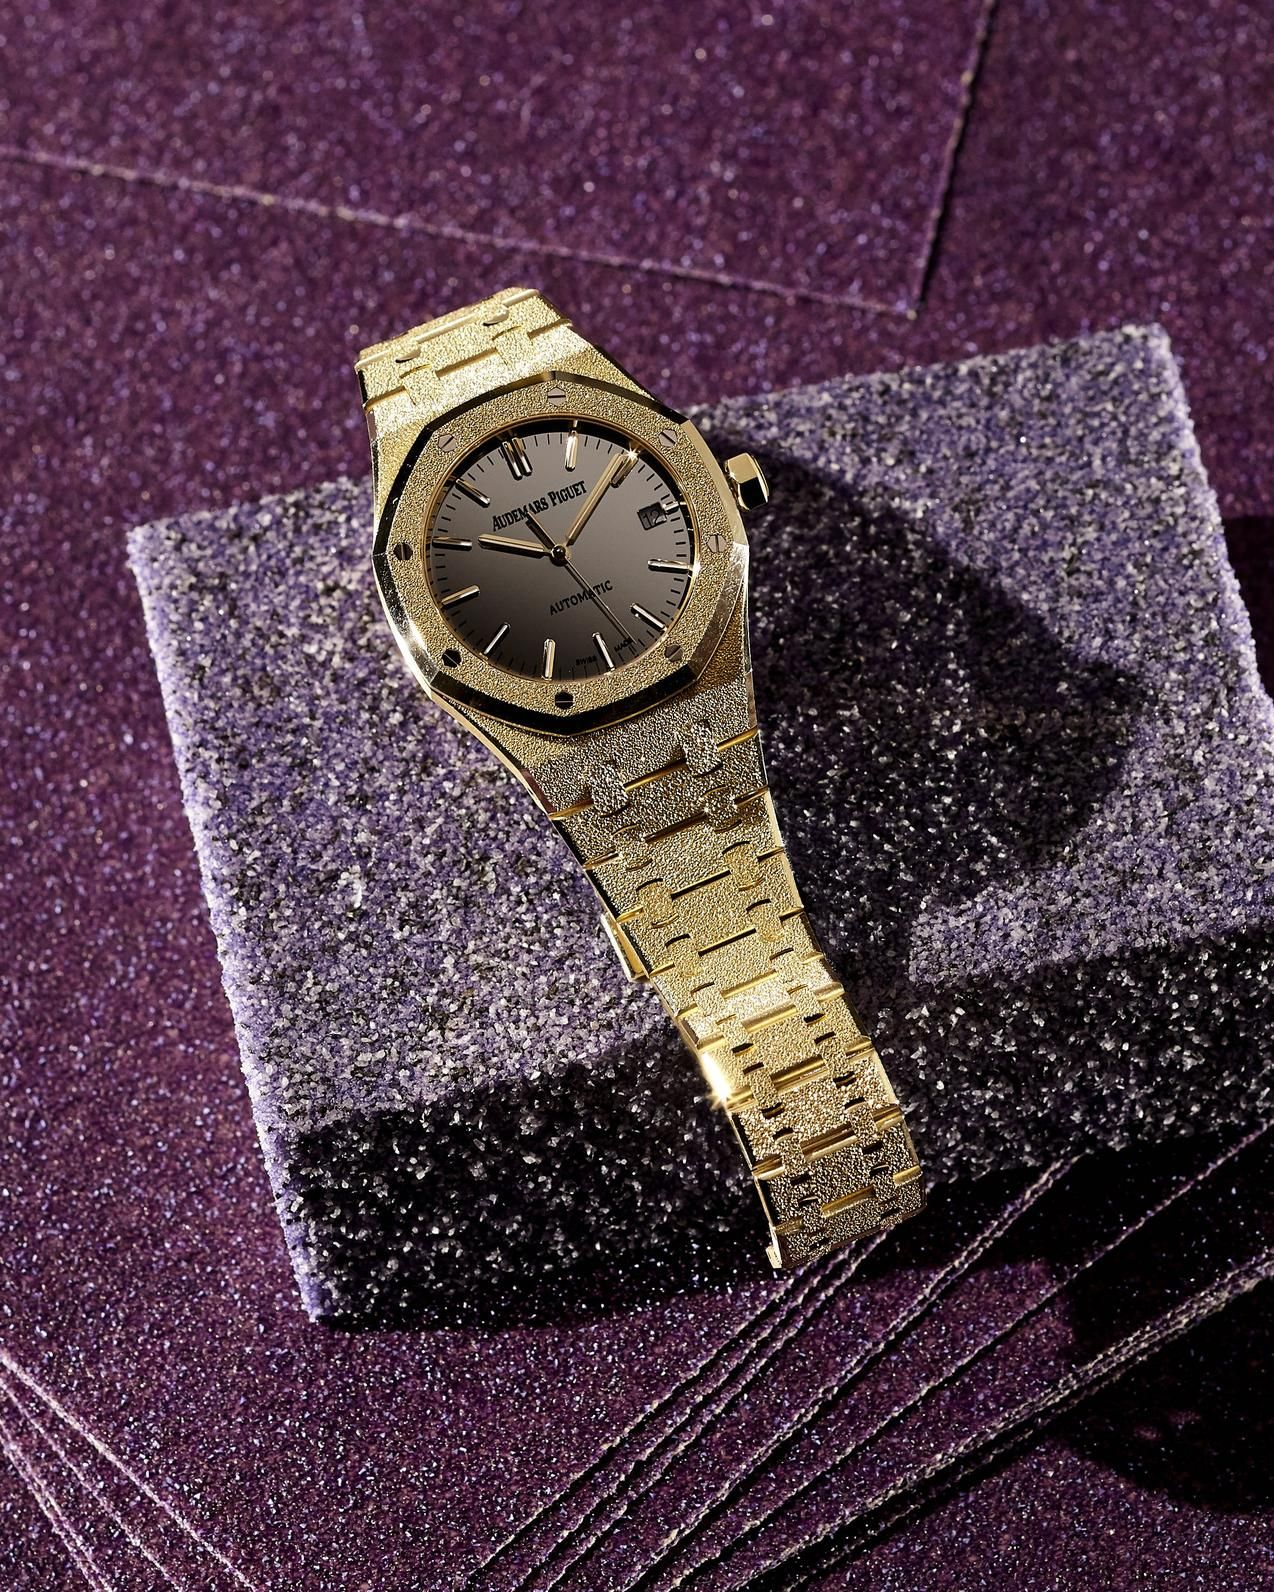 ROUGH MAGIC Audemars Piguet & Carolina Bucci Watch, $53,600, 212-688-6644 PHOTO: F. MARTIN RAMIN/ THE WALL STREET JOURNAL, STYLING BY ANITA SALERNO